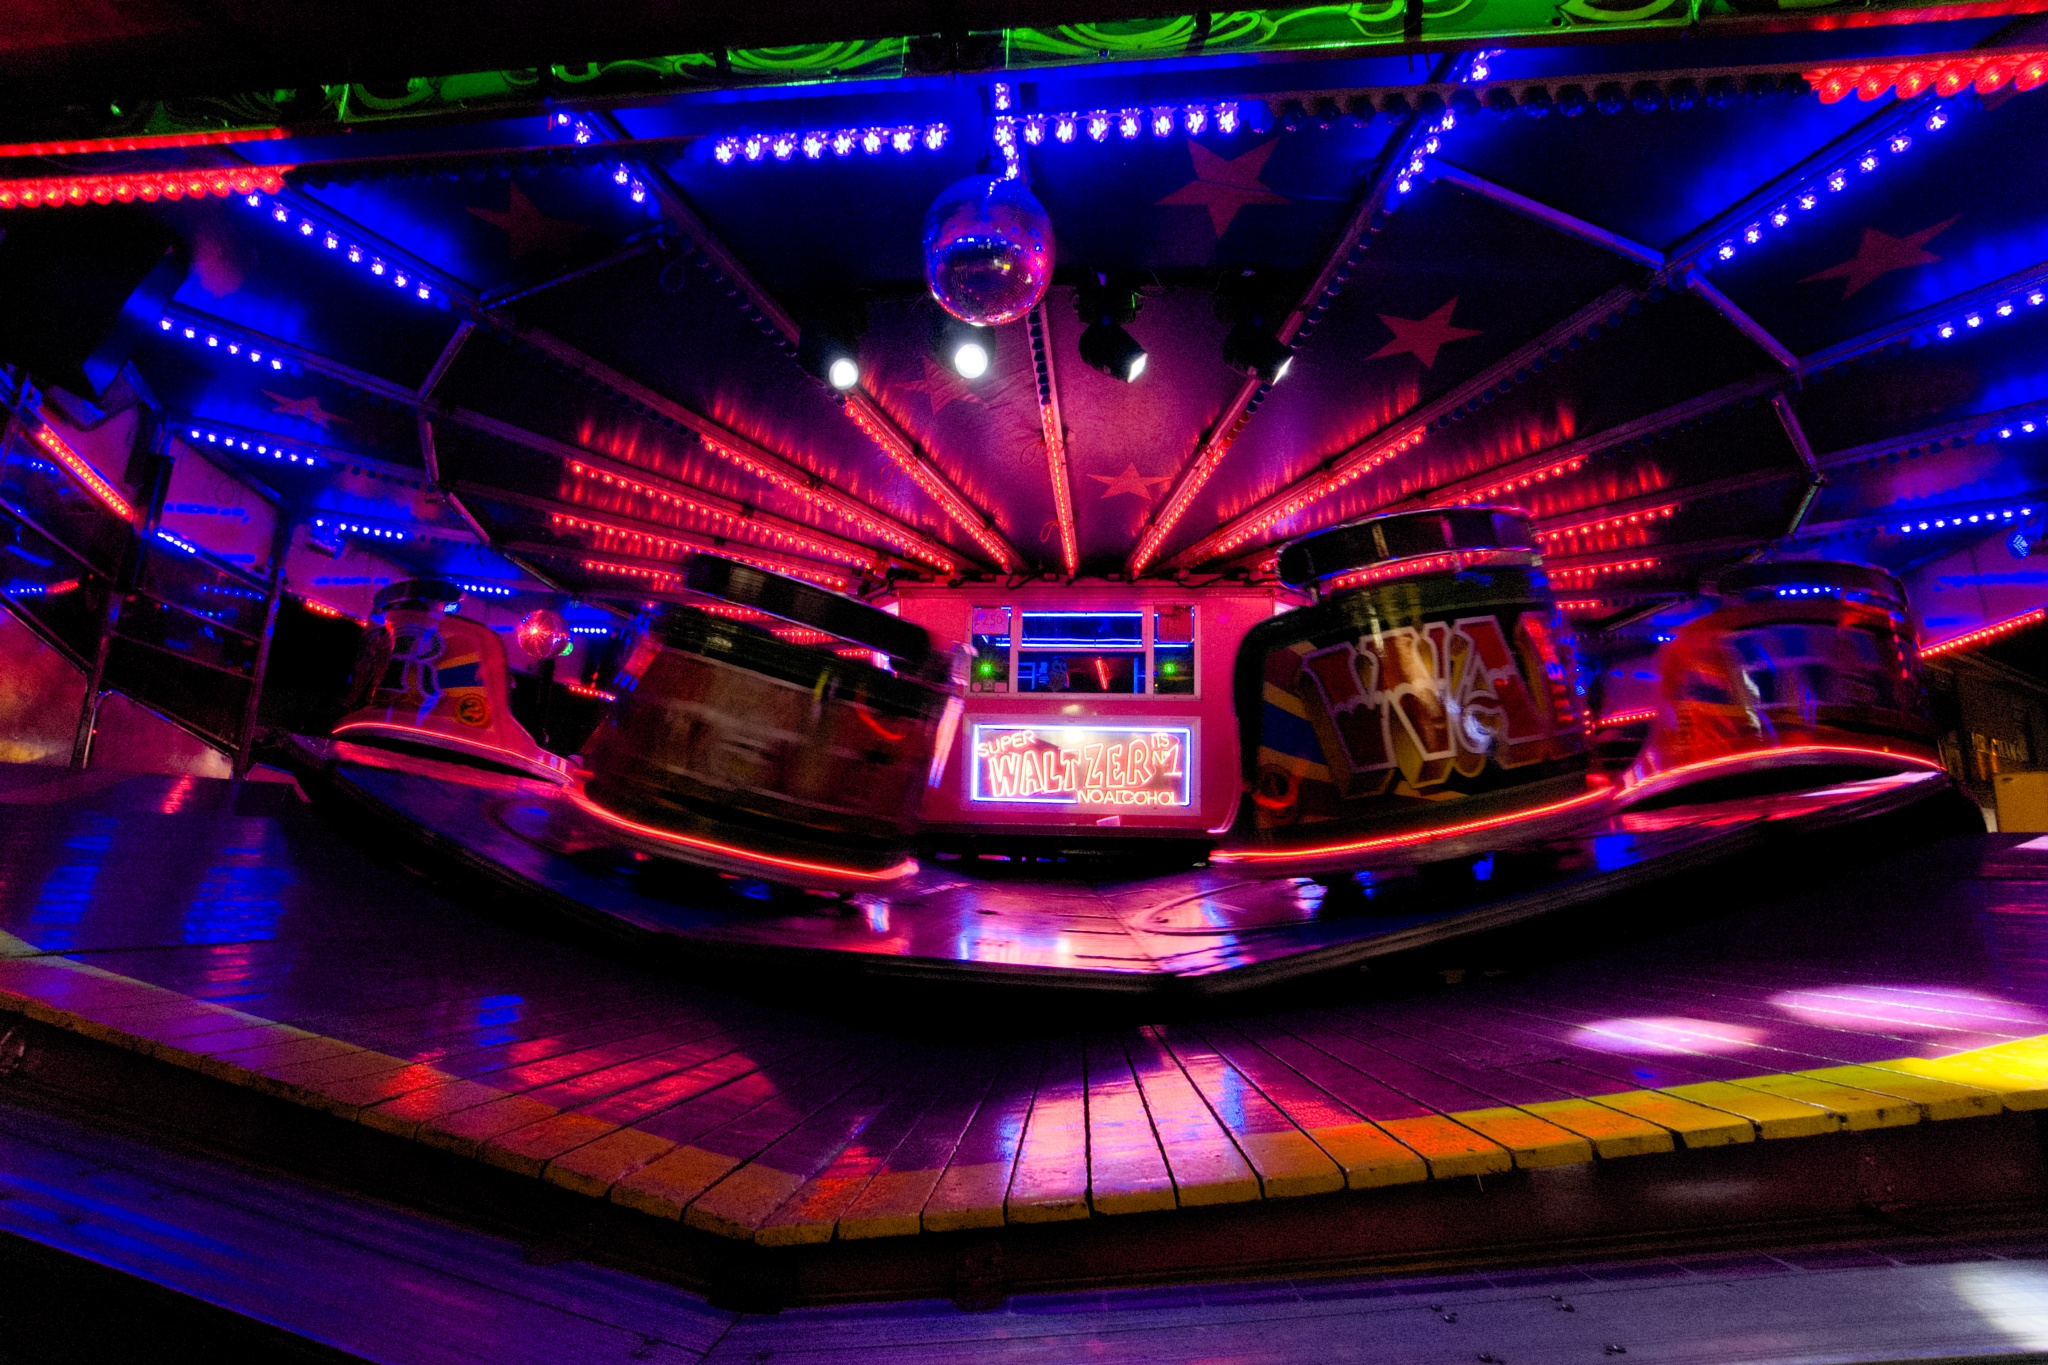 Waltzer by D Whitehead